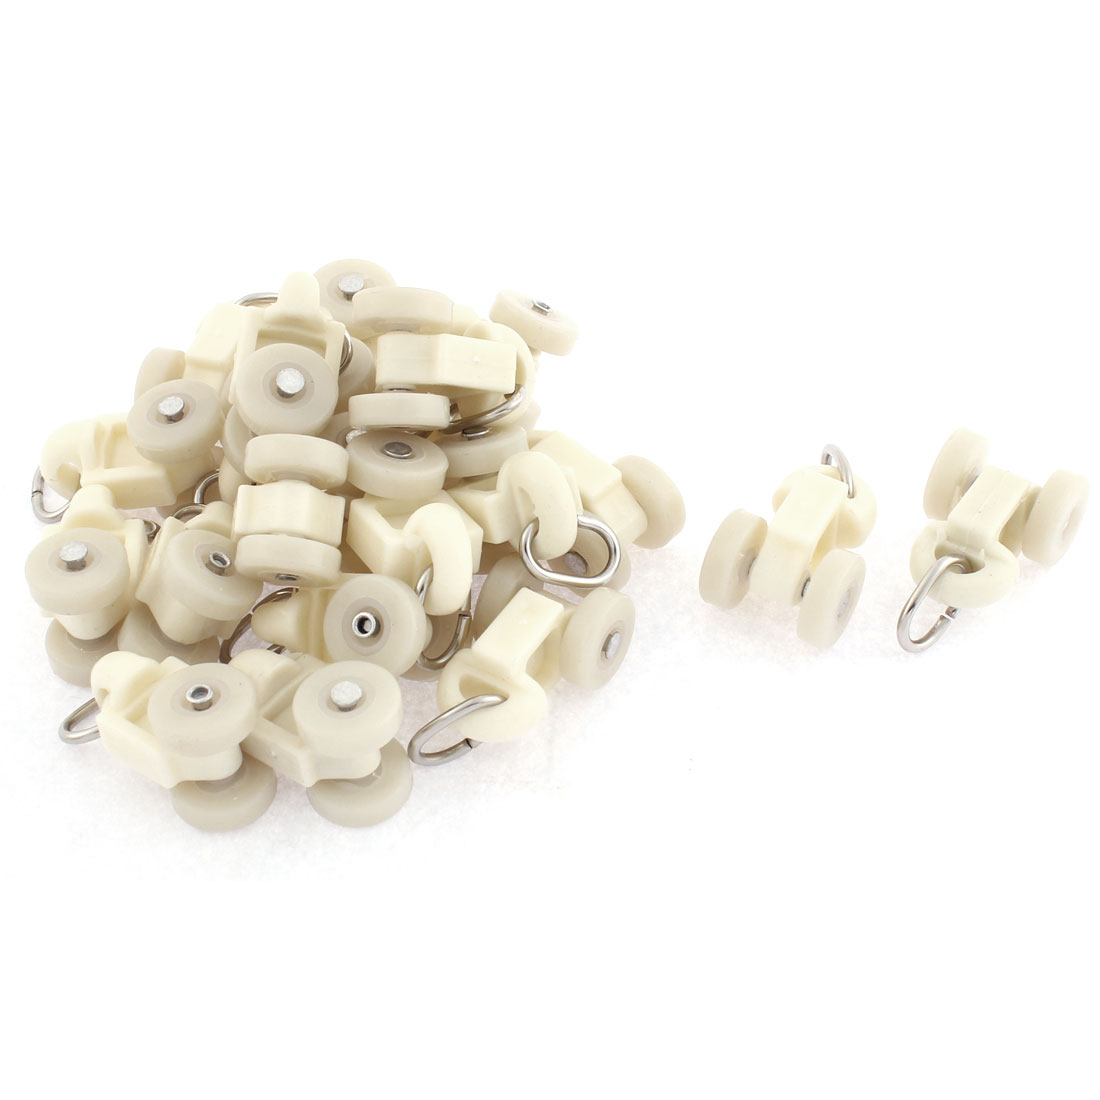 Household Plastic Curtain Track Carrier Roller 14mm Dia Wheel White 20 Pcs